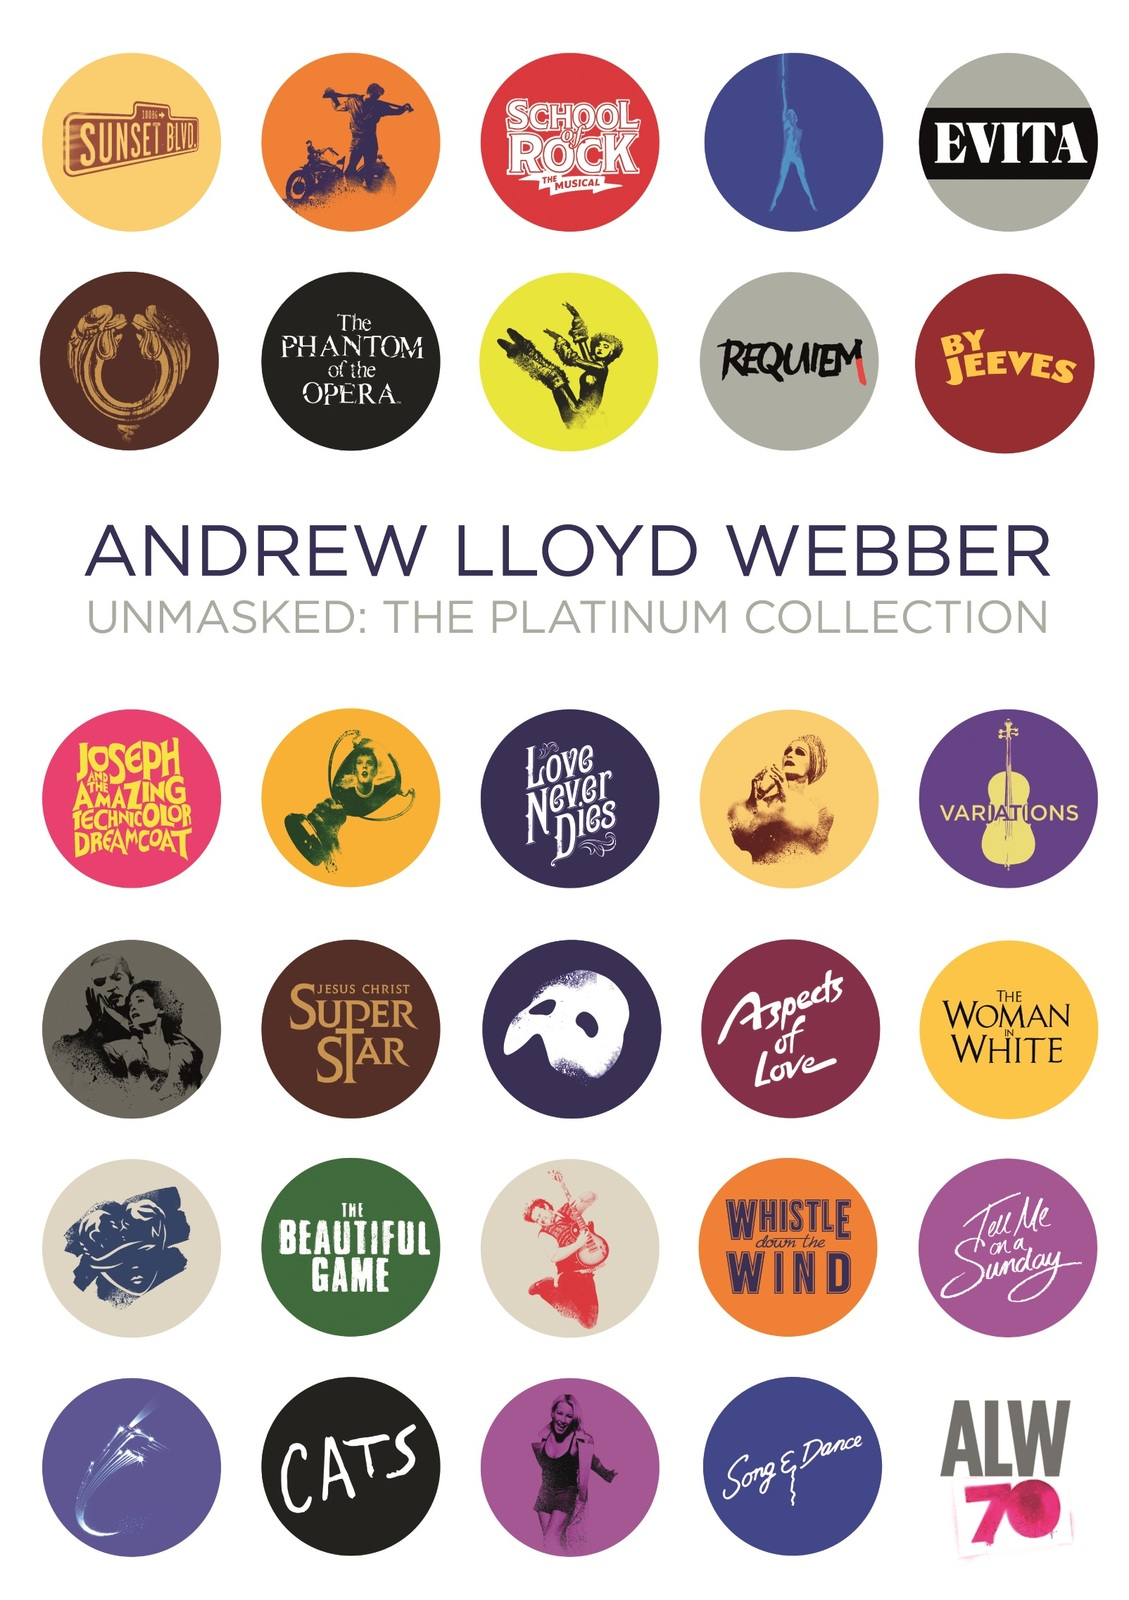 Unmasked (The Platinum Collection) by Andrew Lloyd Webber image